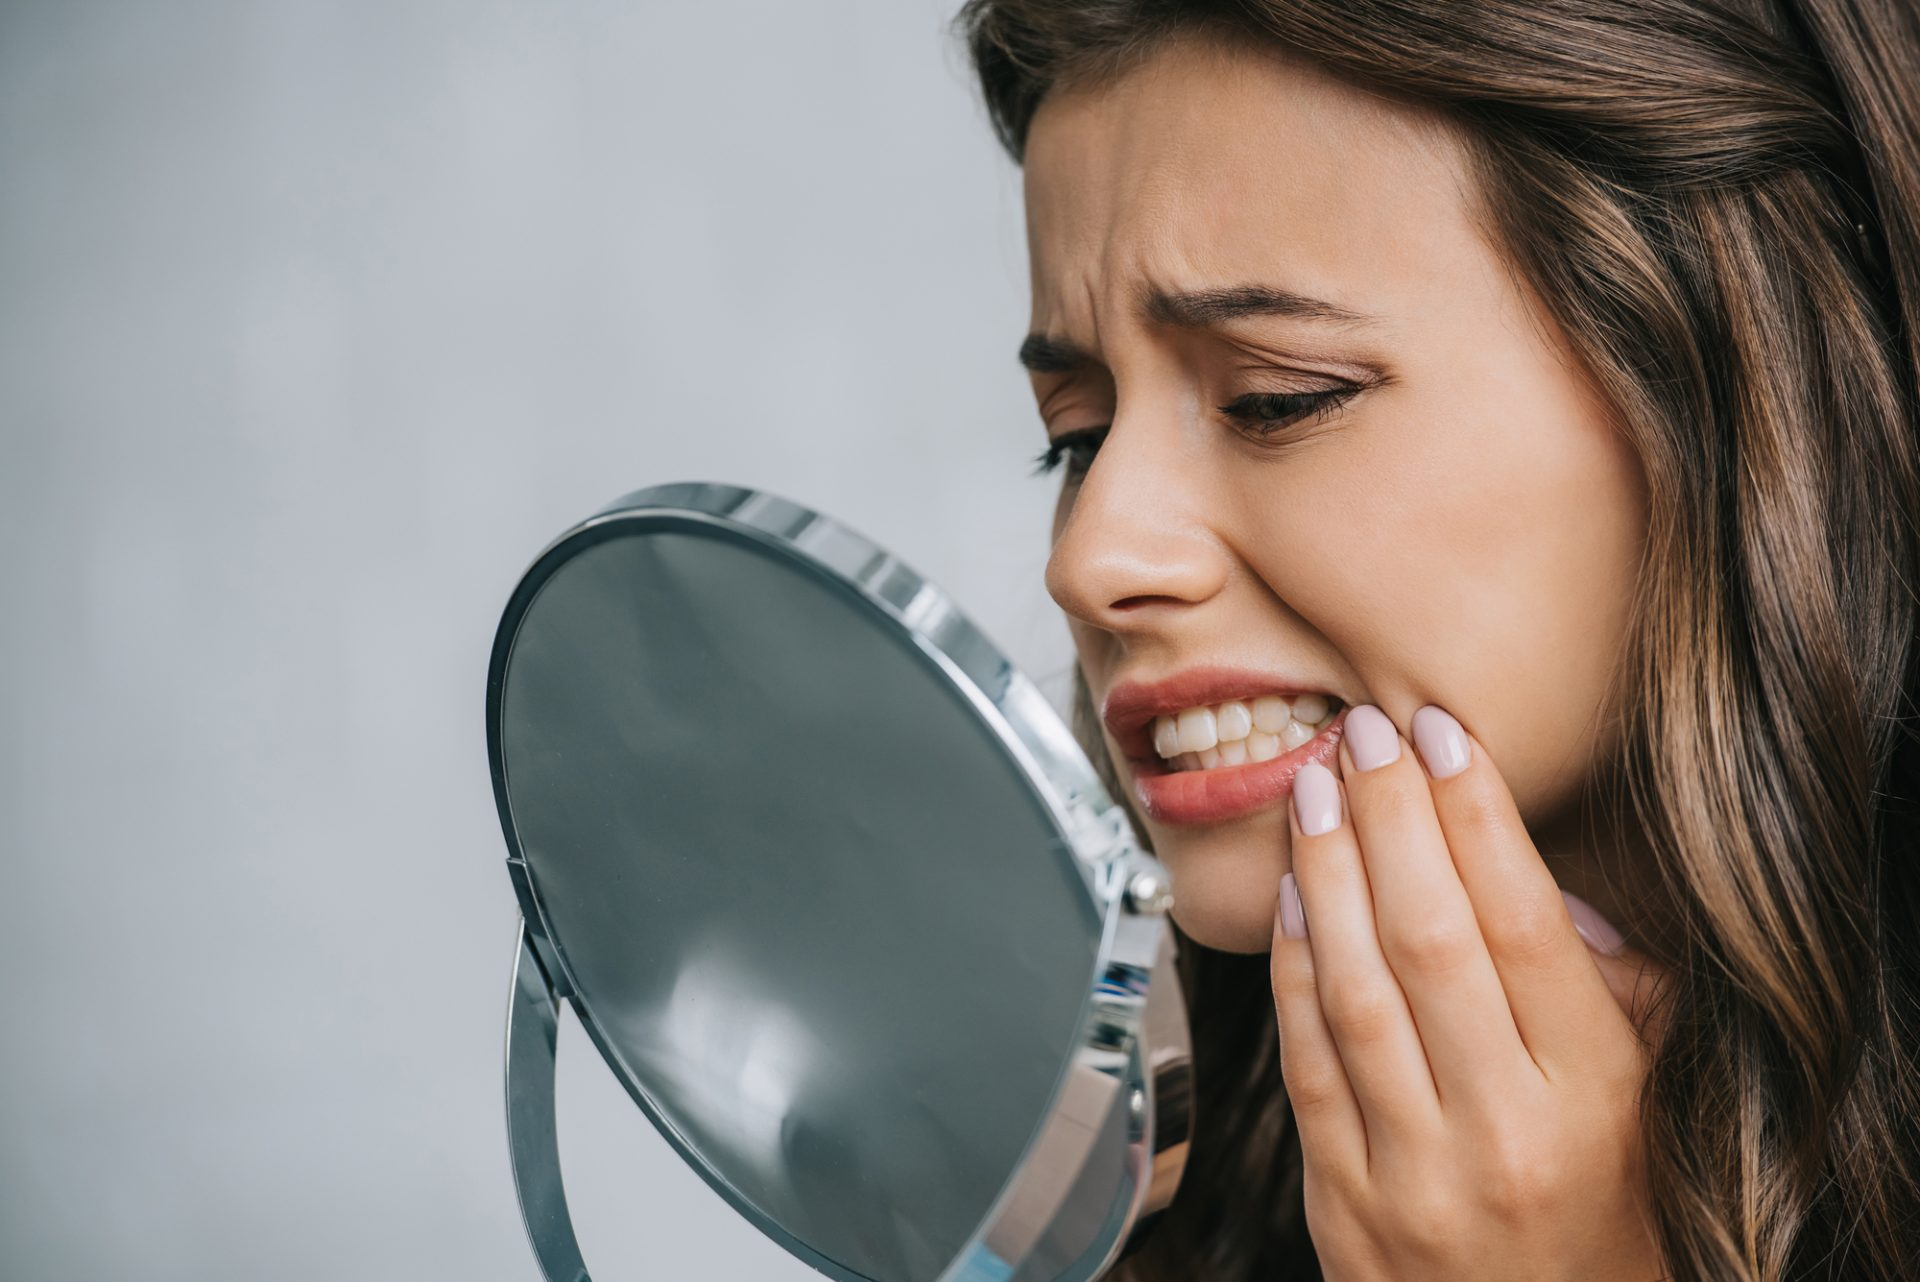 Do Cracked Teeth Heal? Knowing More About Cracks in Teeth